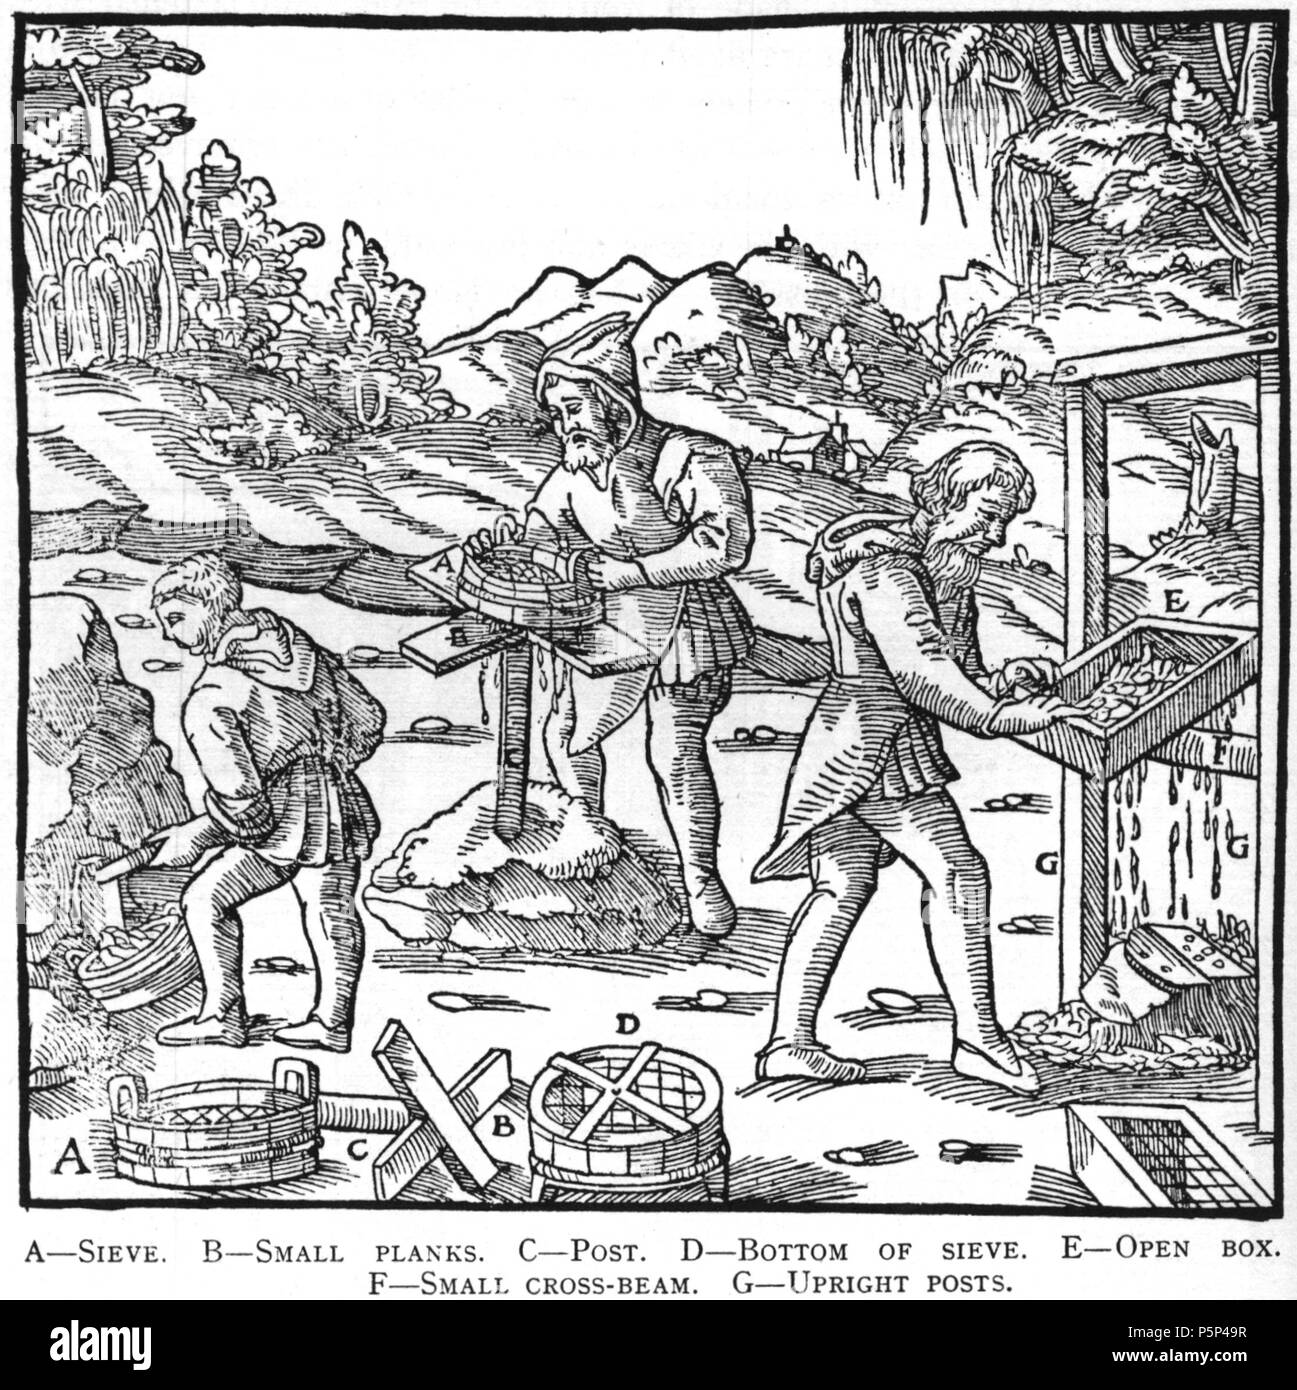 N/A. Woodcut illustration from De re metallica by Georgius Agricola. This is a 300dpi scan from the 1950 Dover edition of the 1913 Hoover translation of the 1556 reference. The Dover edition has slightly smaller size prints than the Hoover (which is a rare book). The woodcuts were recreated for the 1913 printing. Filenames (except for the title page) indicate the chapter (2, 3, 5, etc.) followed by the sequential number of the illustration. 2 May 2005, 07:12:54. TCO (talk) 223 Book8-15 - Stock Image